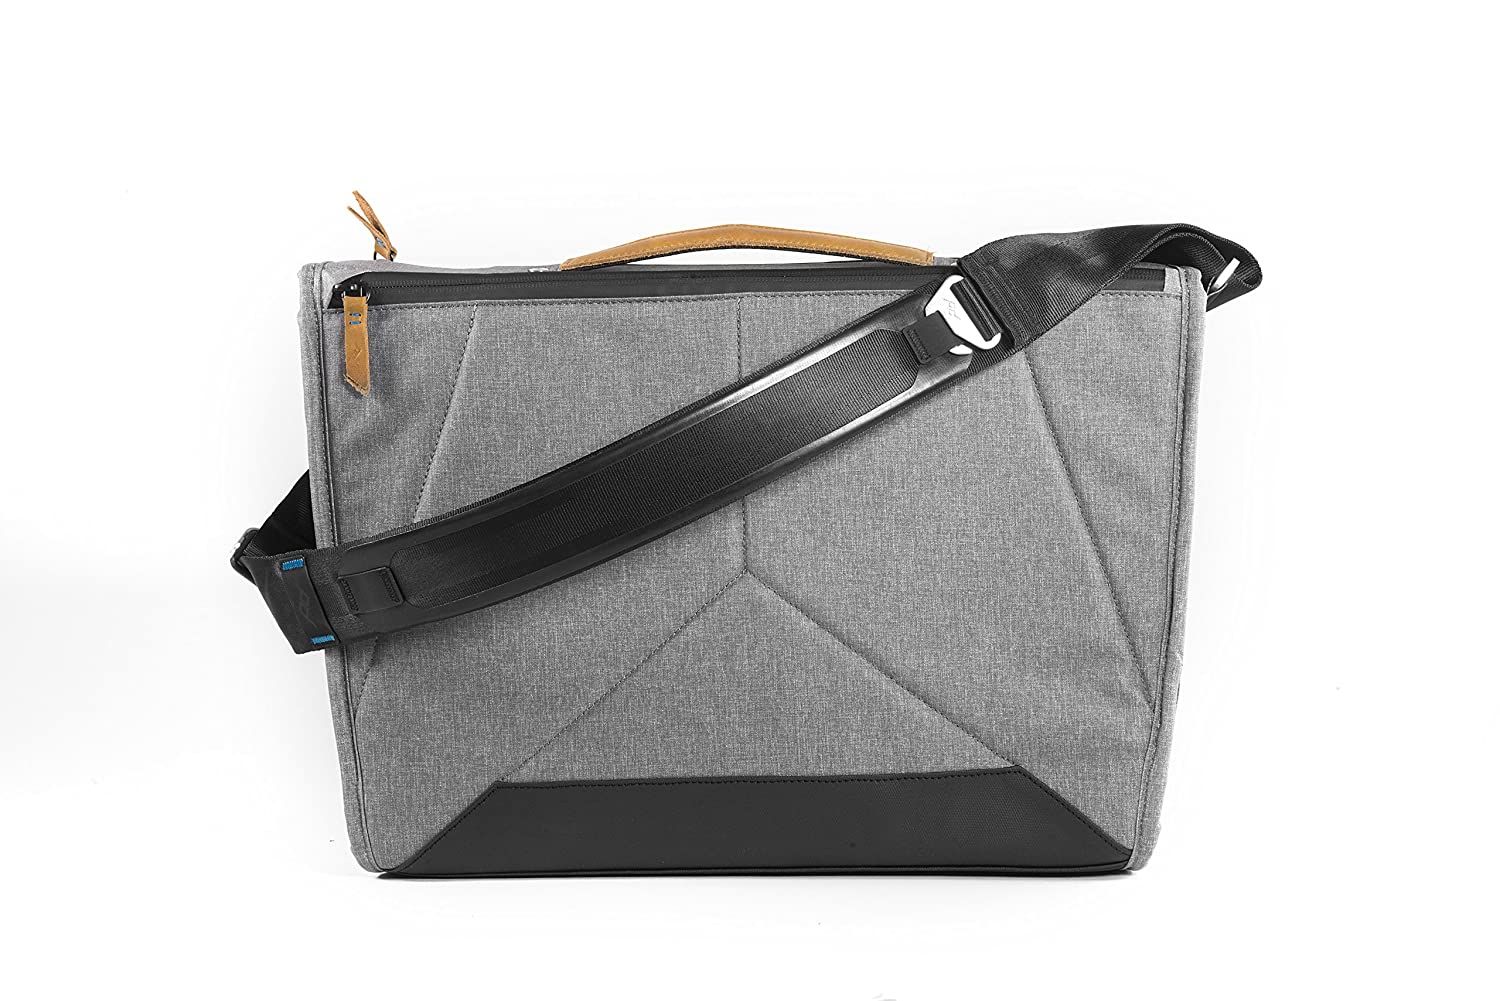 Peak Design Everyday Messenger Bag Black Friday Deals 2019